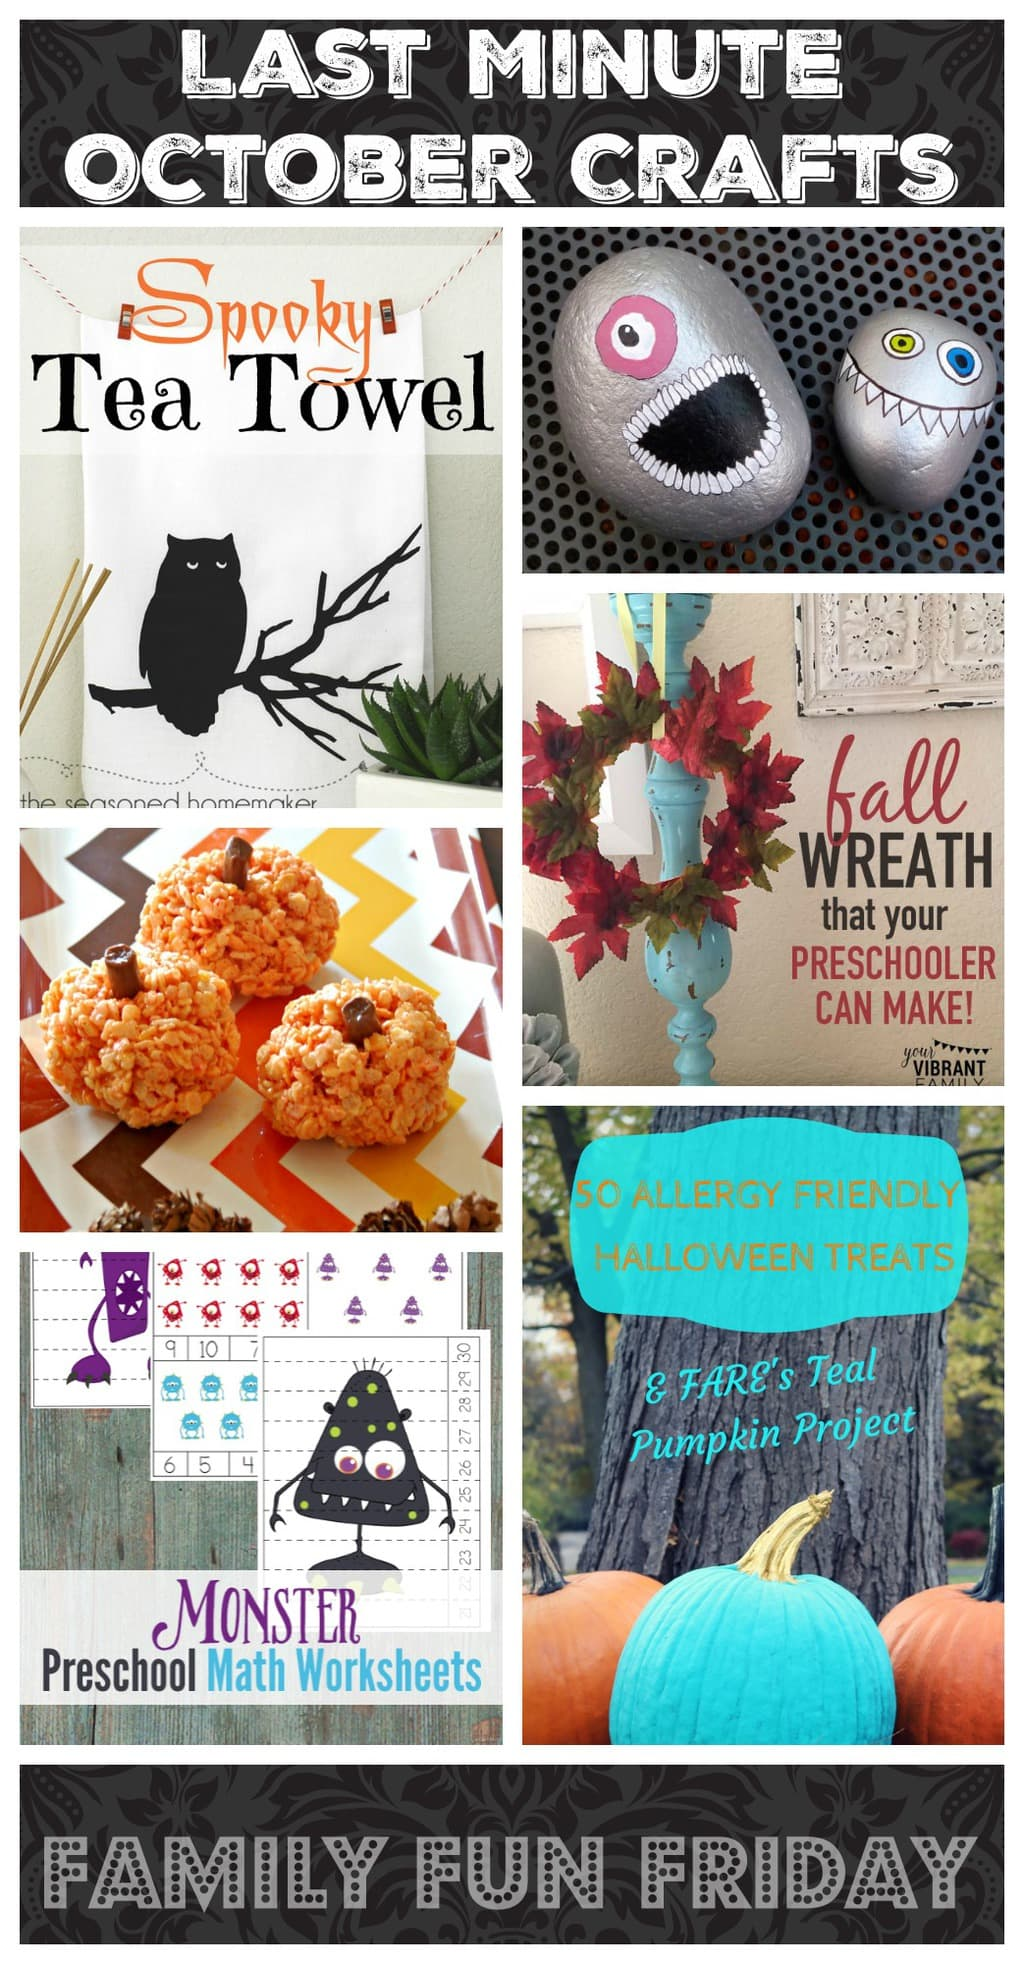 Last Minute October Crafts Gym Craft Laundry